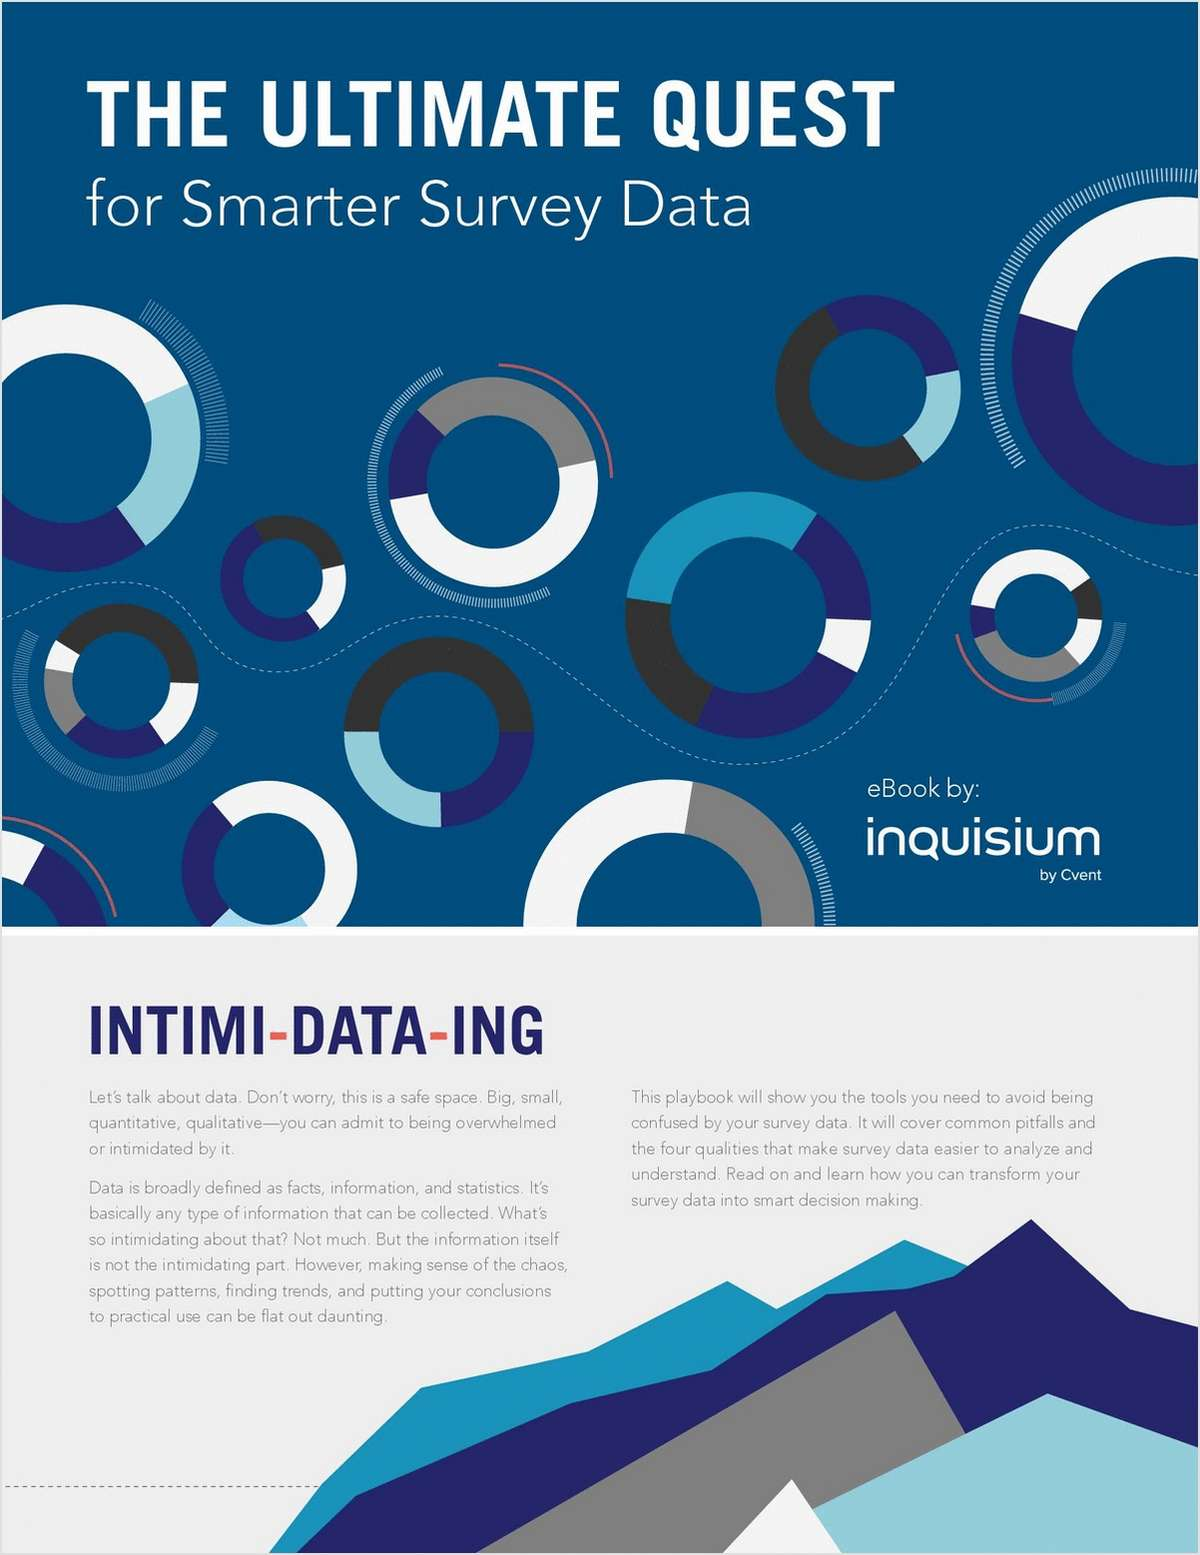 The Ultimate Quest for Smarter Survey Data